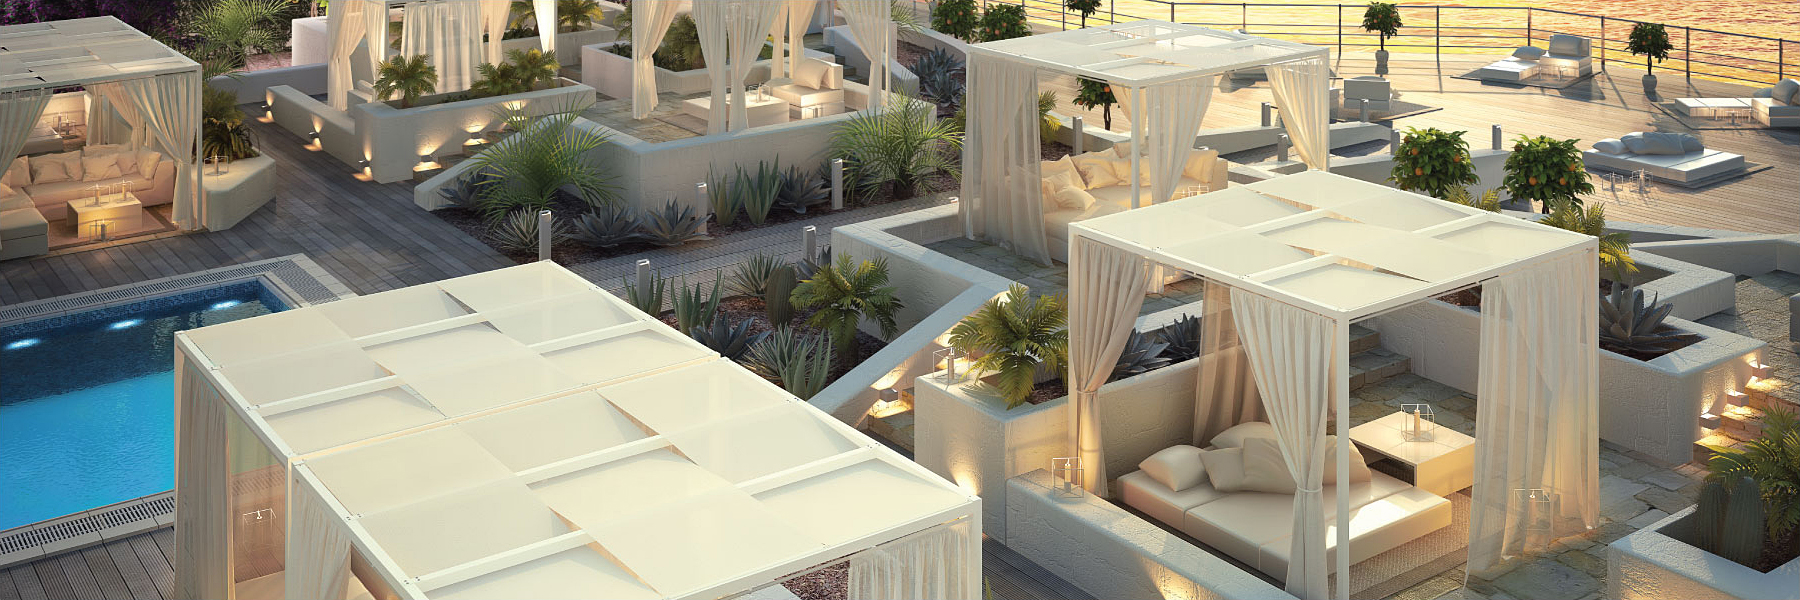 OUTDOOR CANOPIES FOR RESORT AND HOTELS